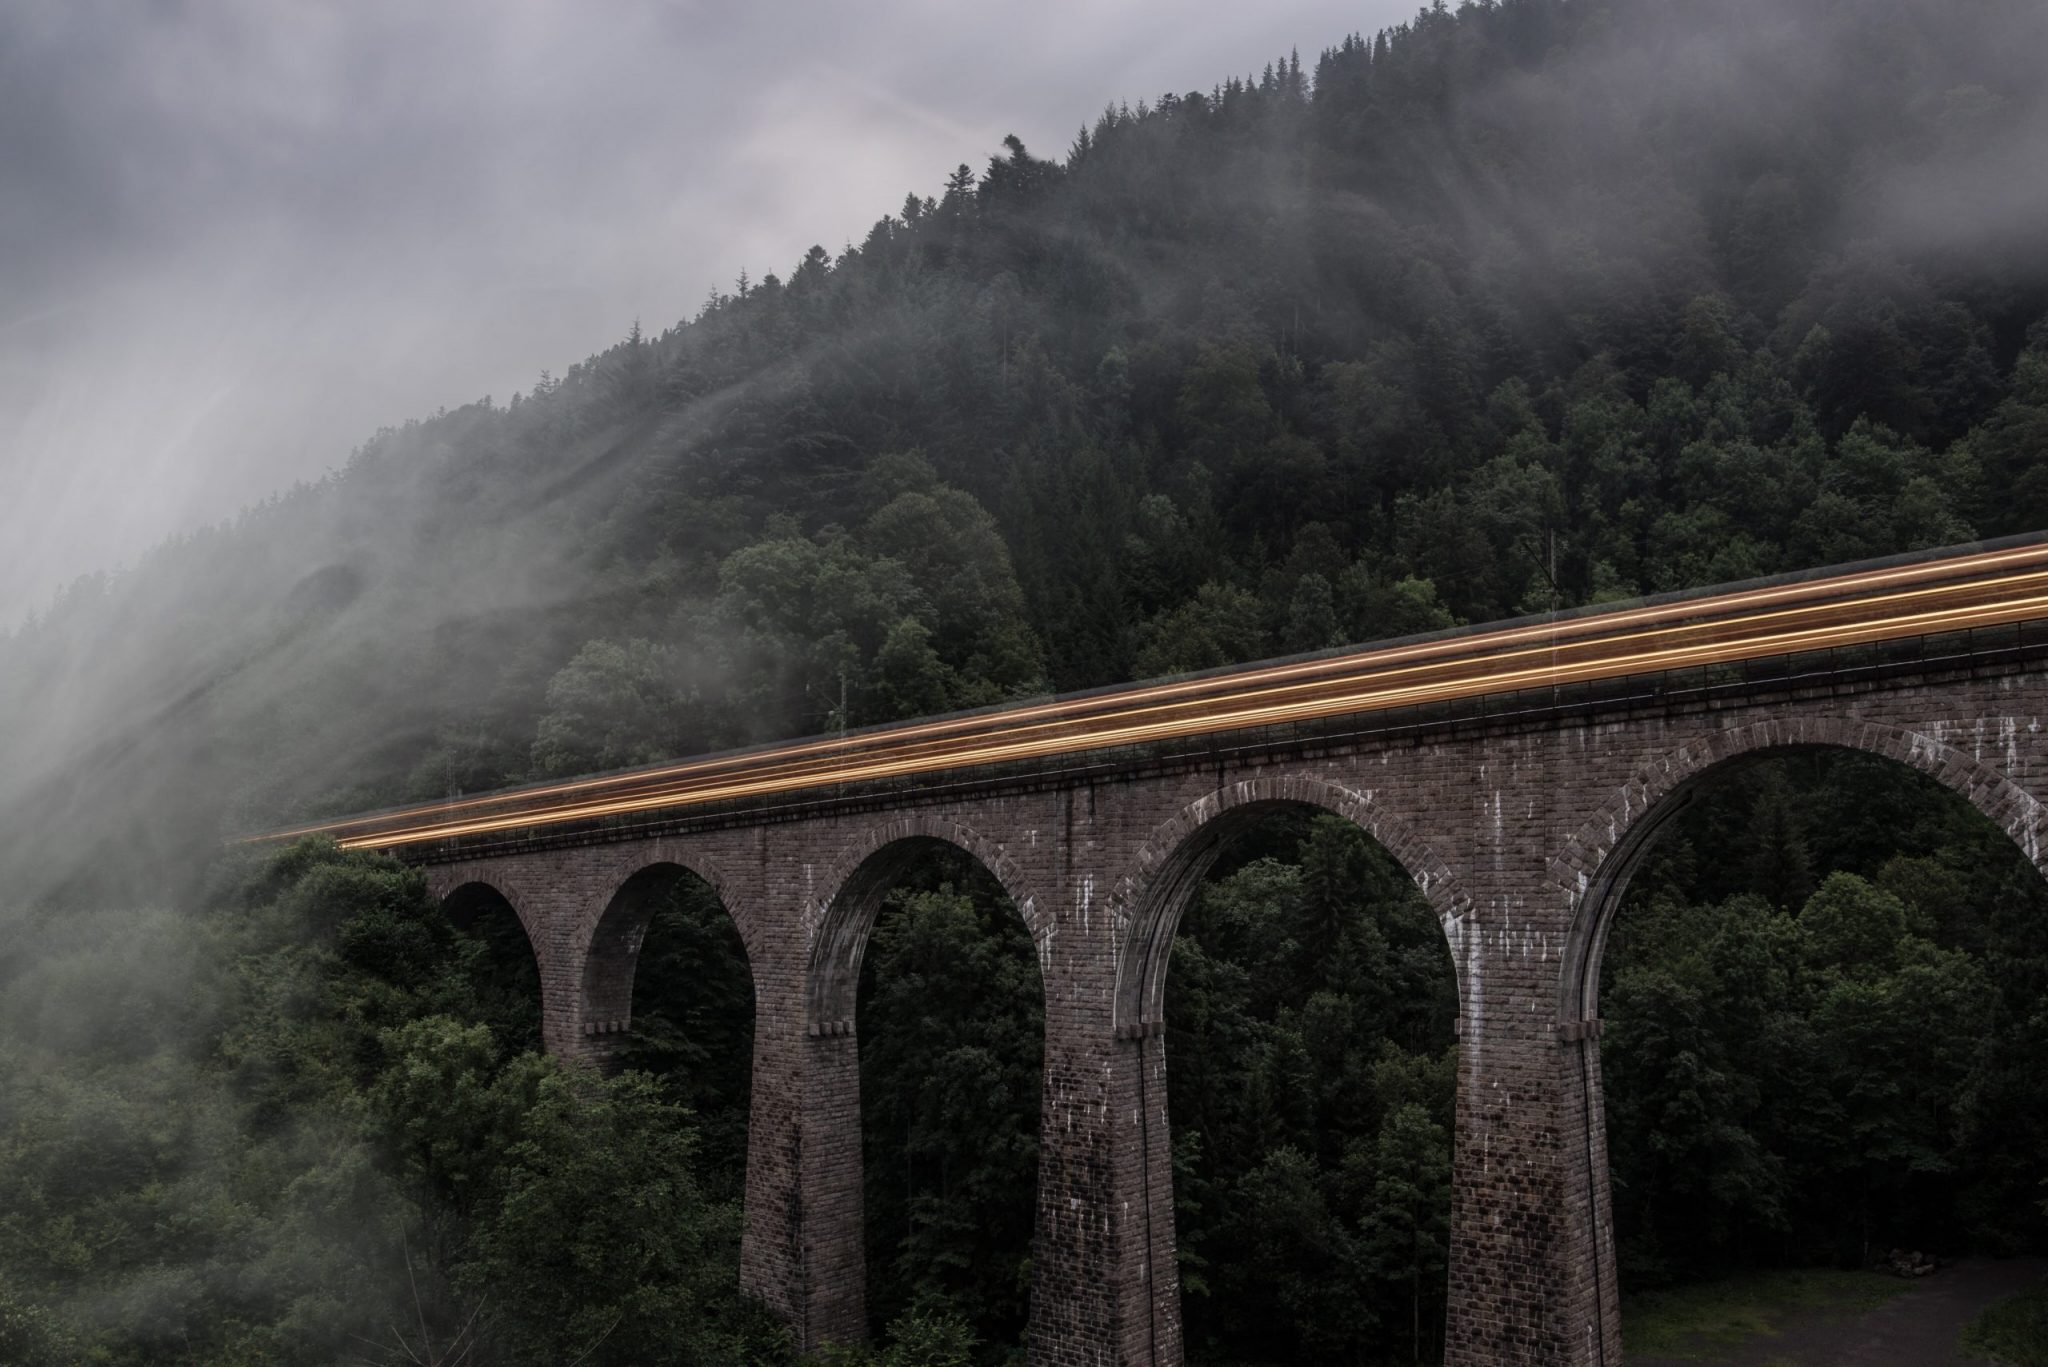 A misty bridge in the middle of the Black Forest.